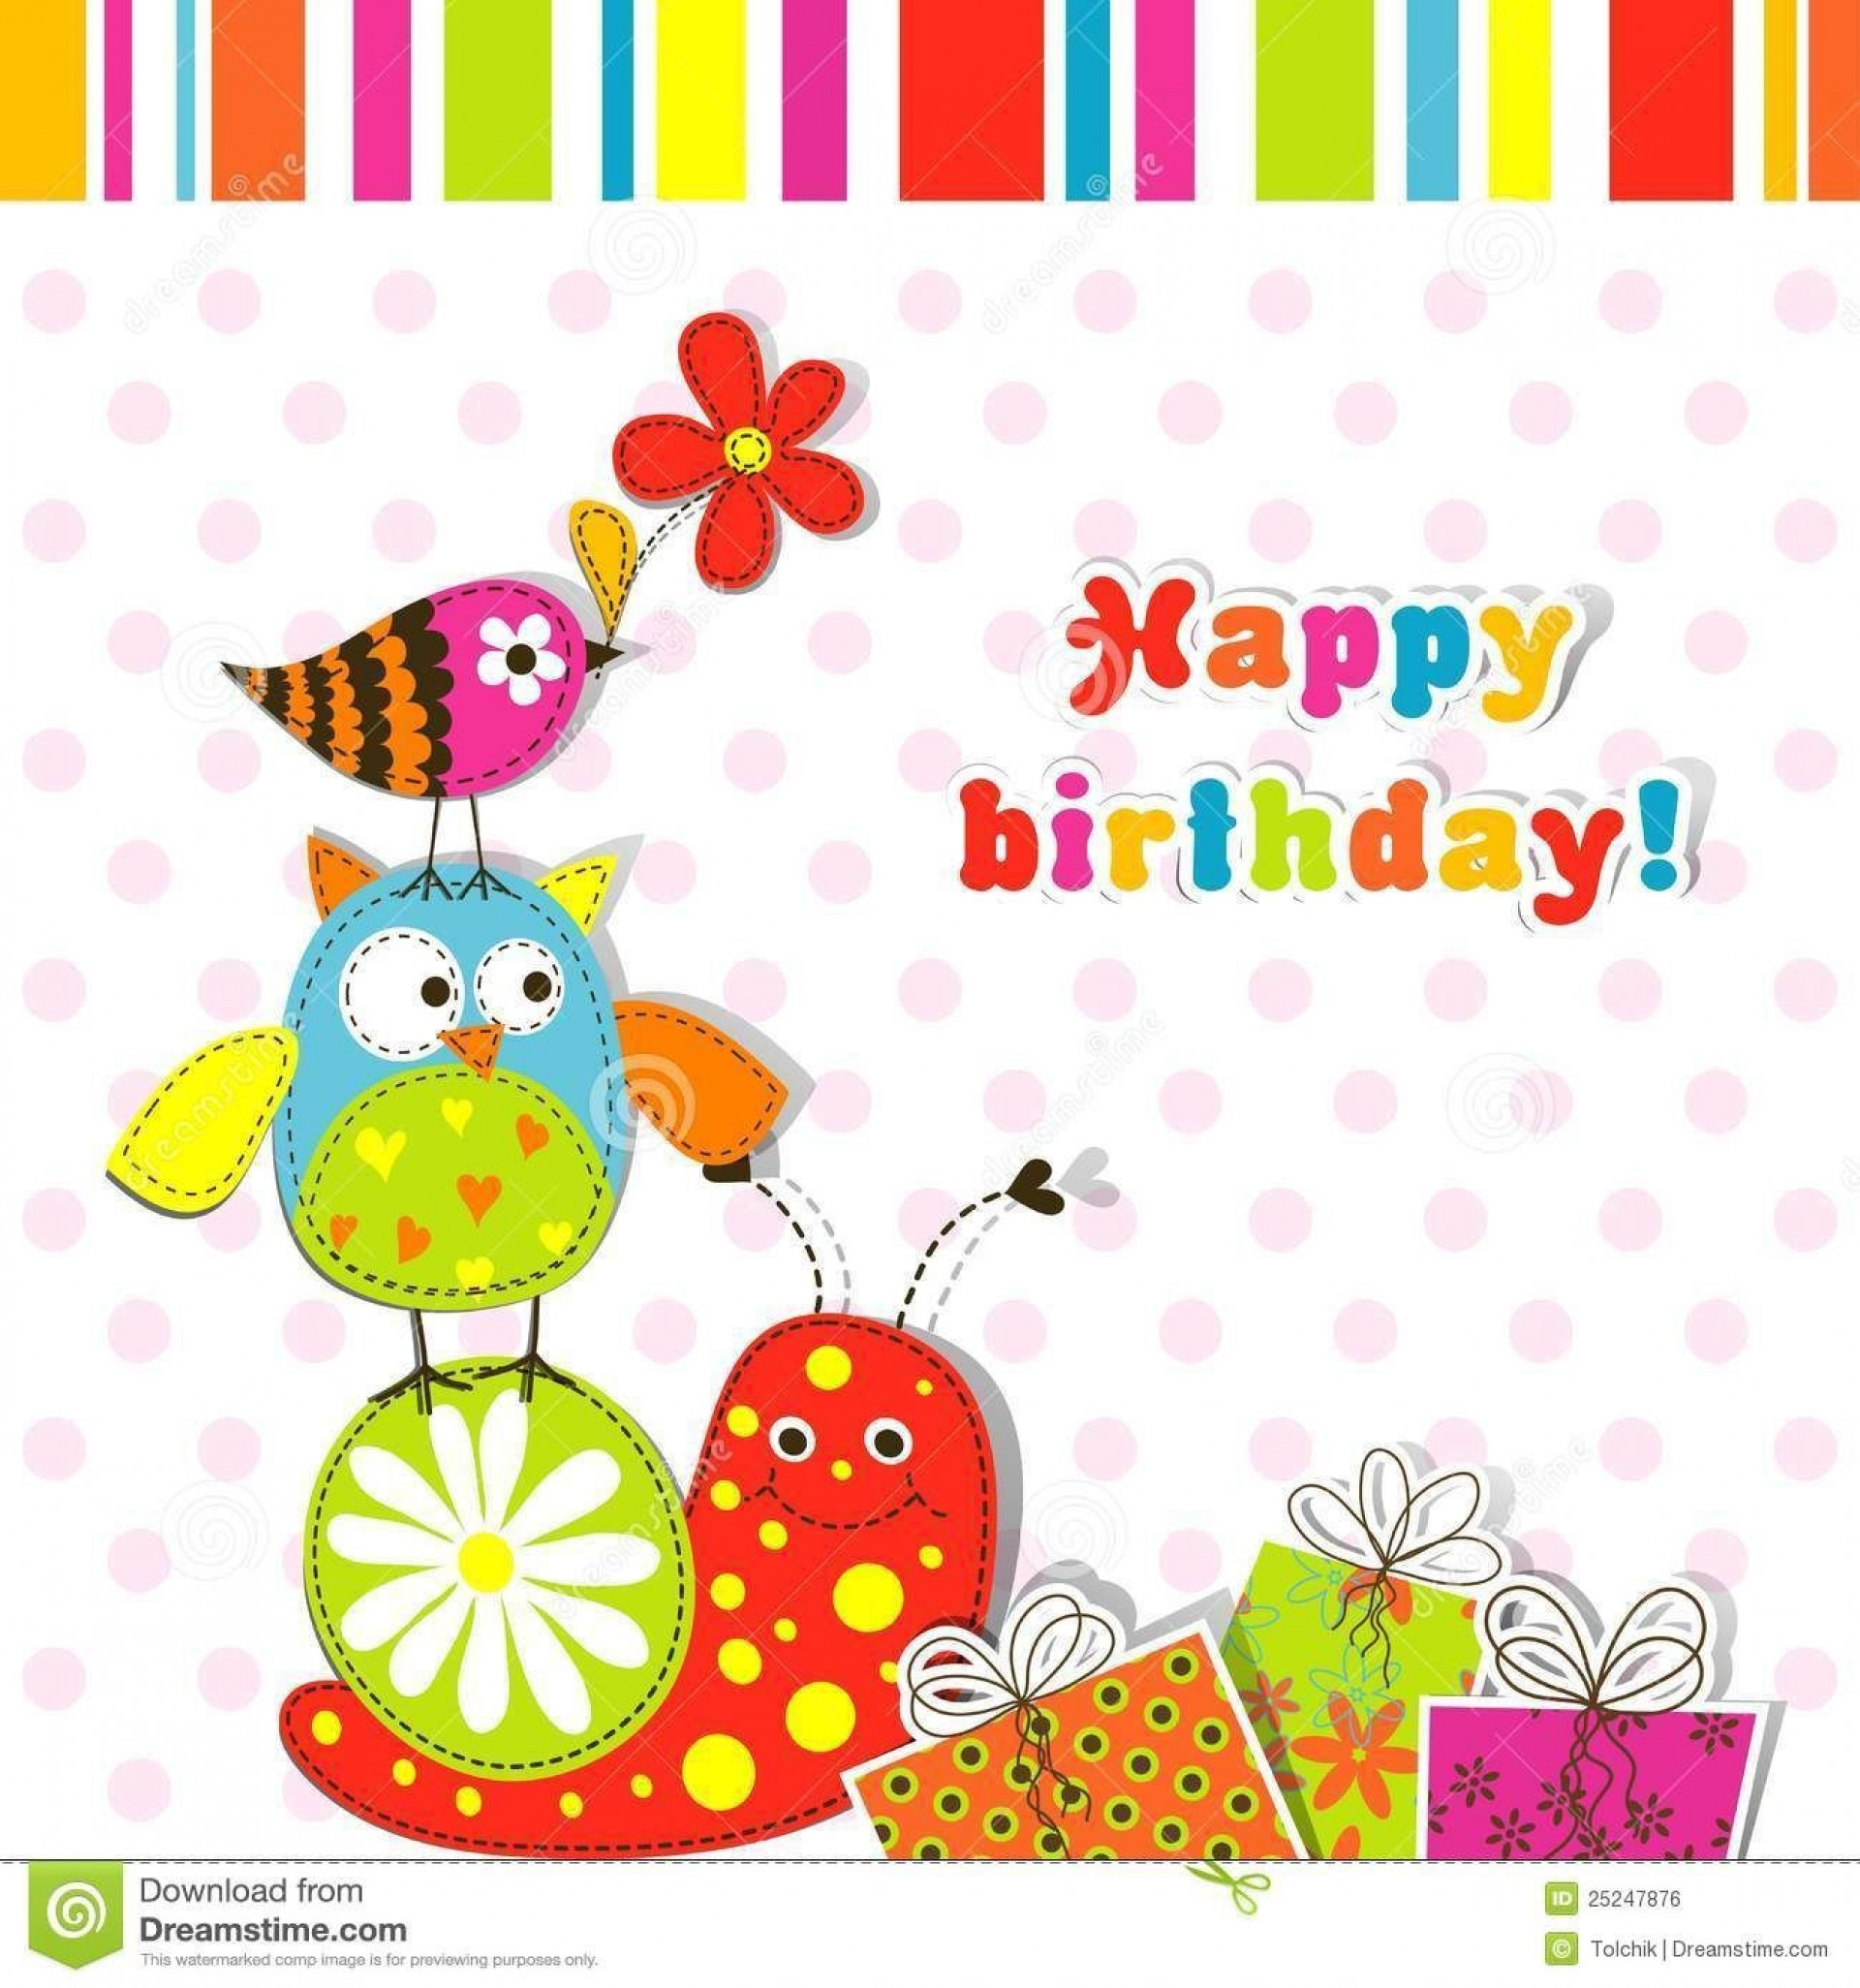 008 Surprising Birthday Card Template Free Image  Invitation Photoshop Download Word1920